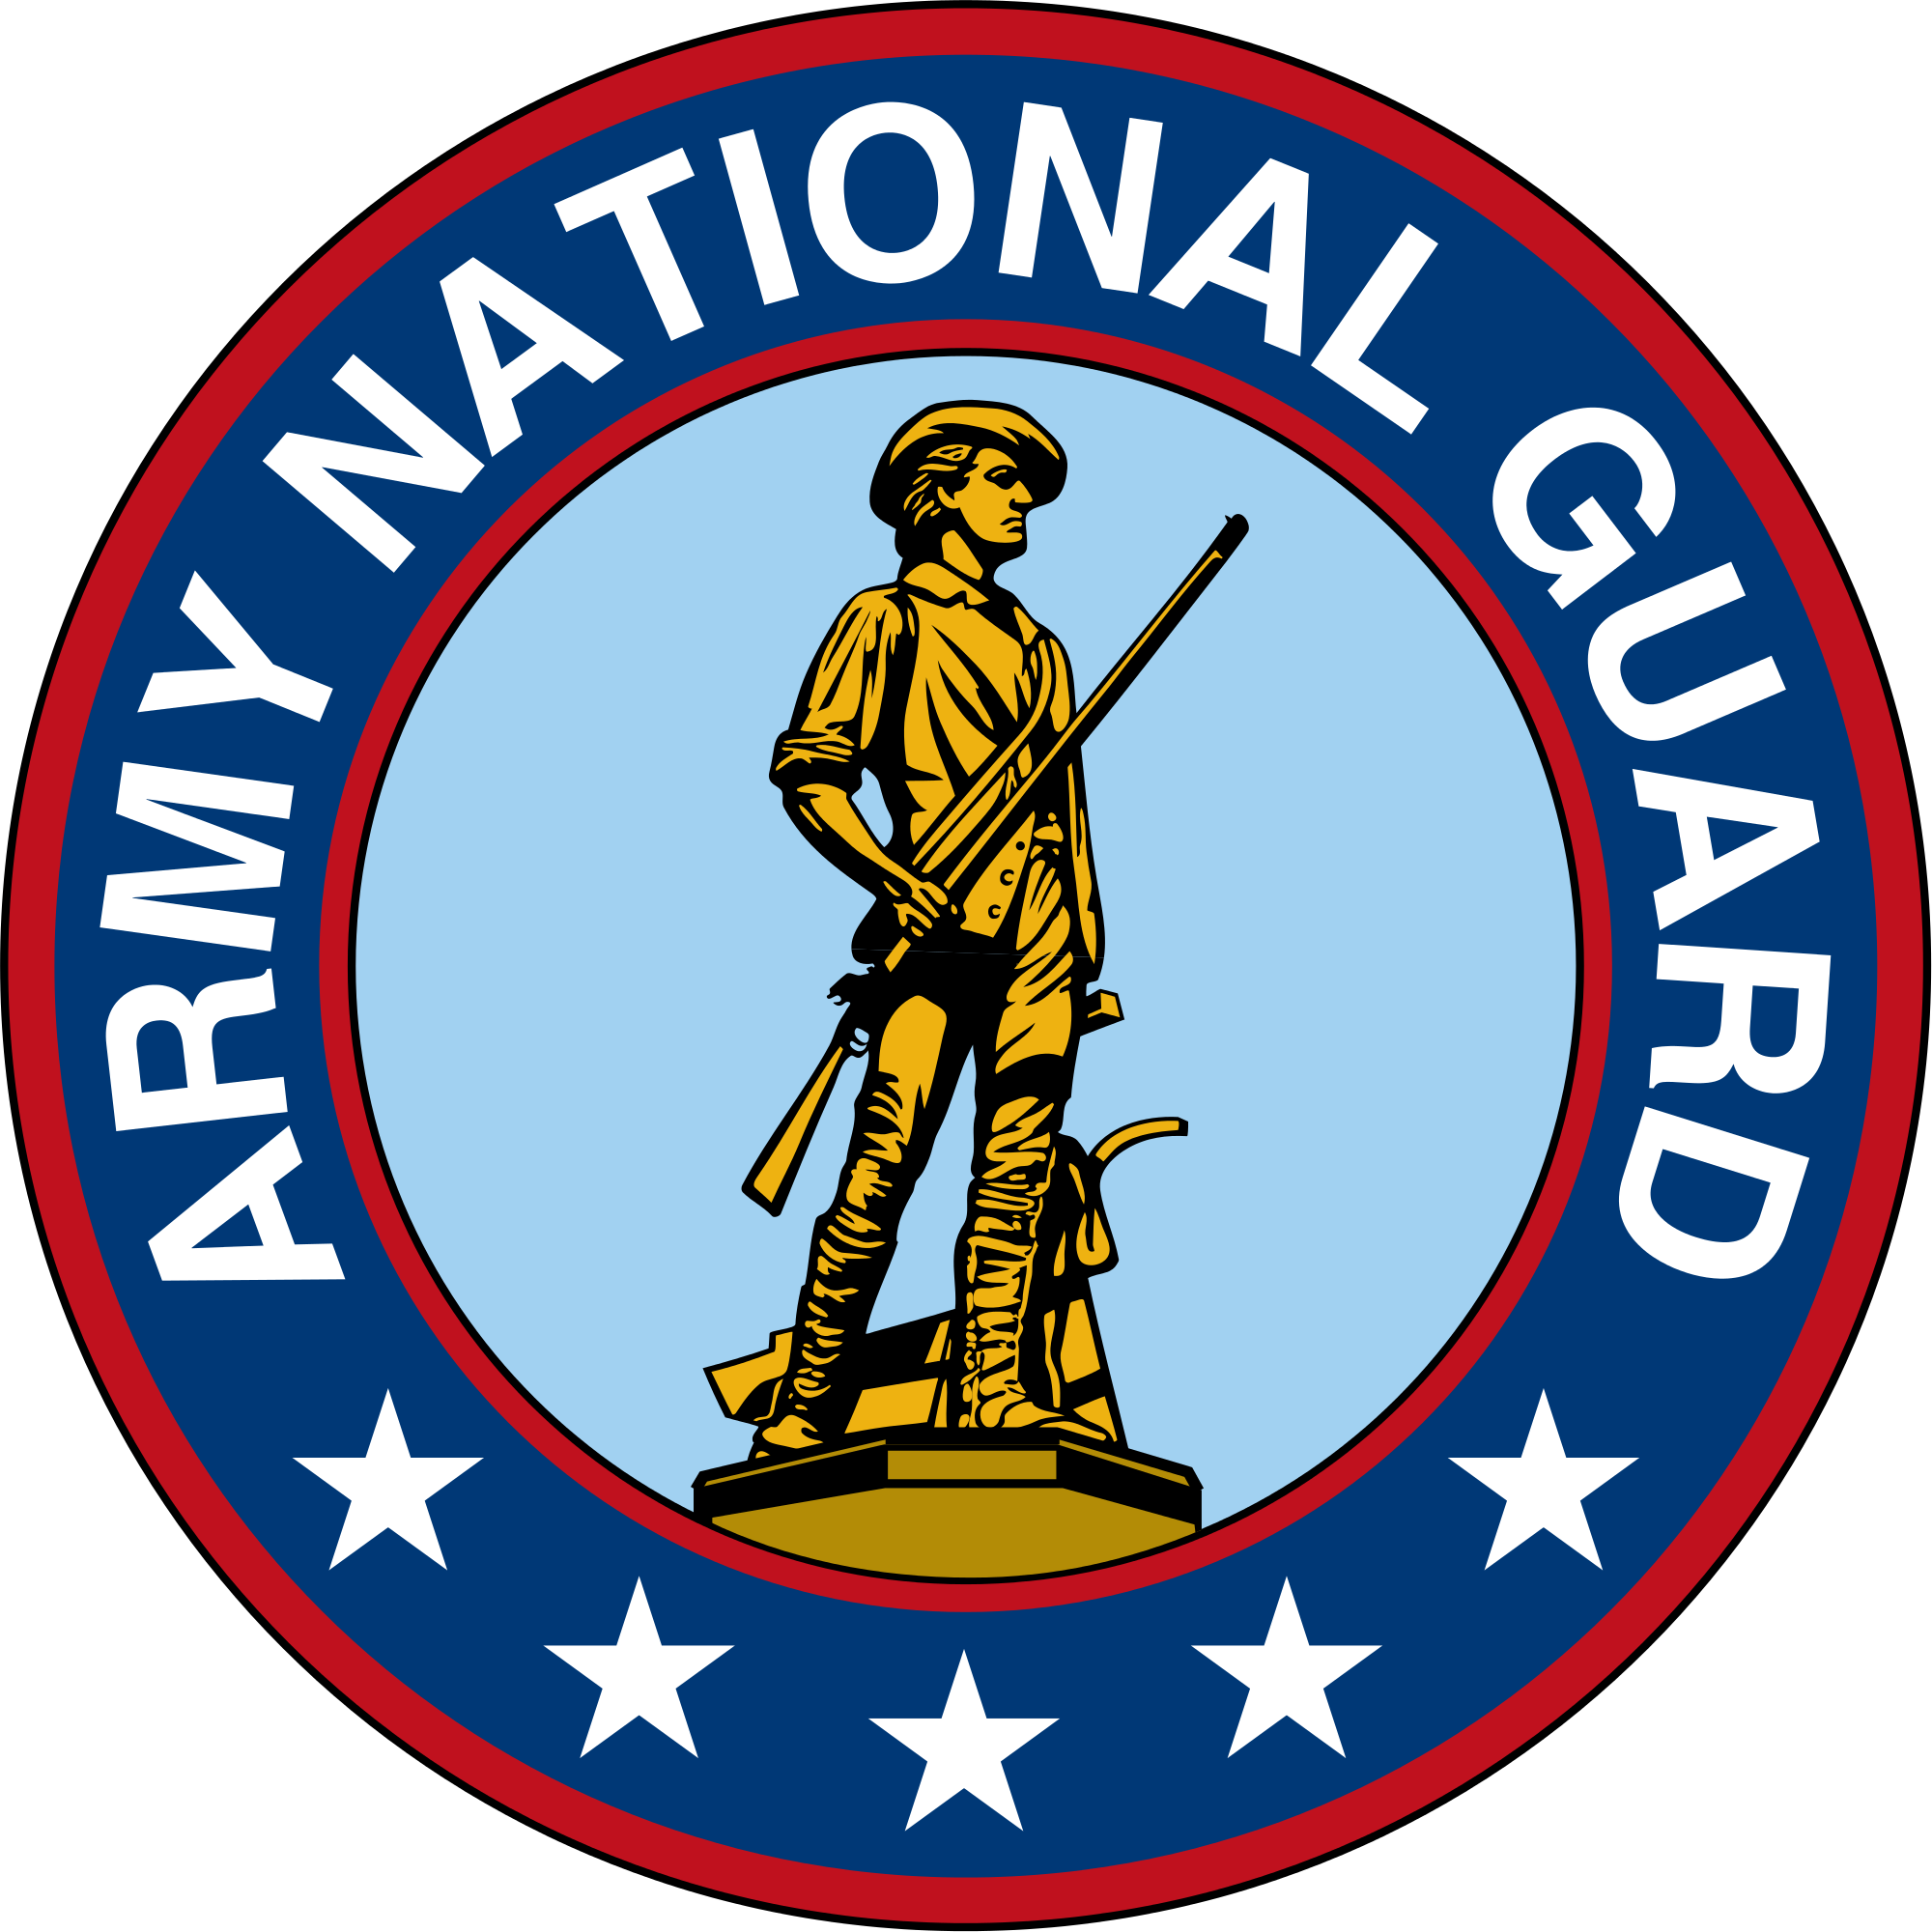 File:Seal of the United States Army National Guard.svg - Wikimedia ...